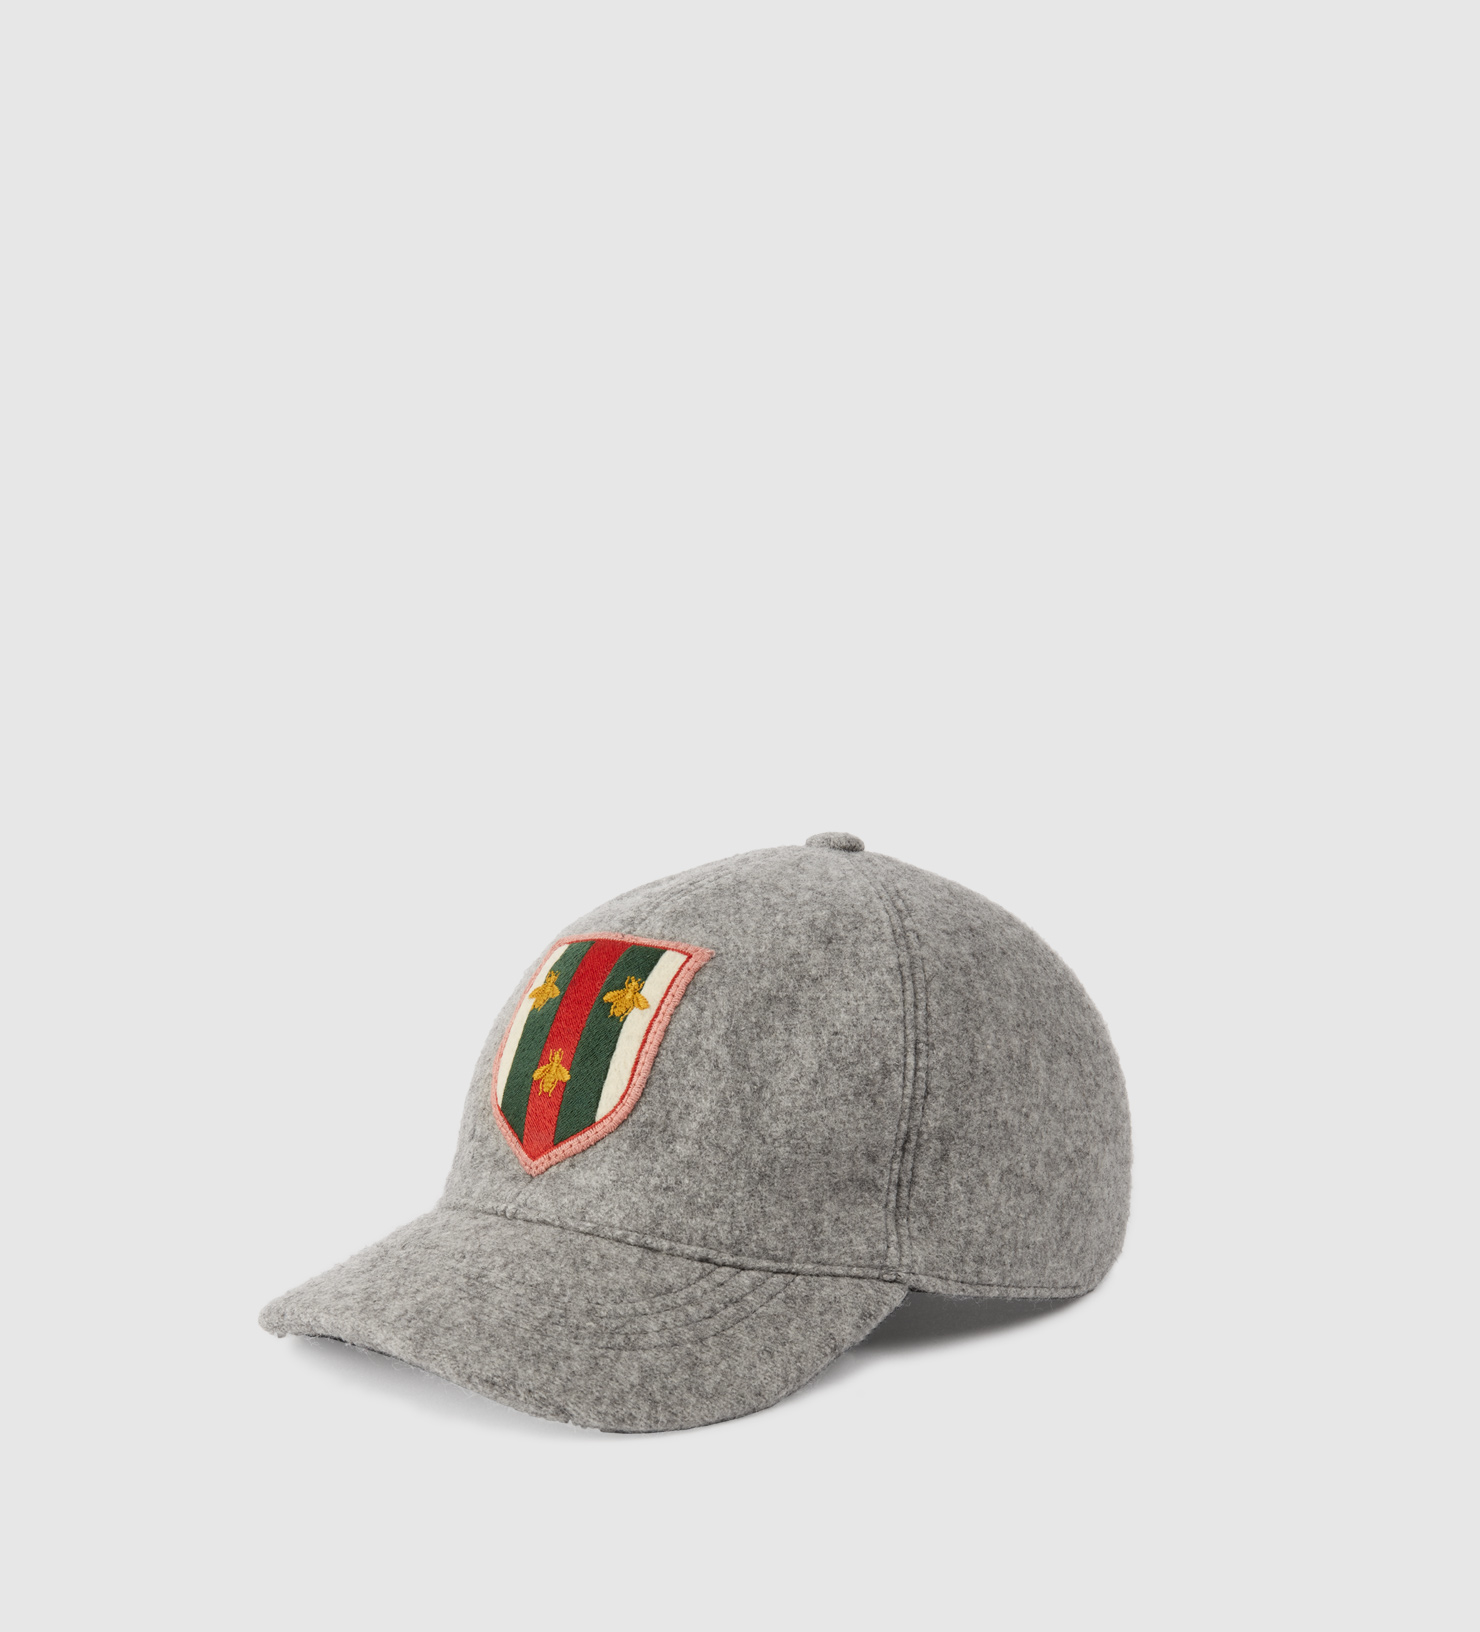 ef0d5b33c3d Gucci Felt Hat With Web Crest And Bees in Gray for Men - Lyst